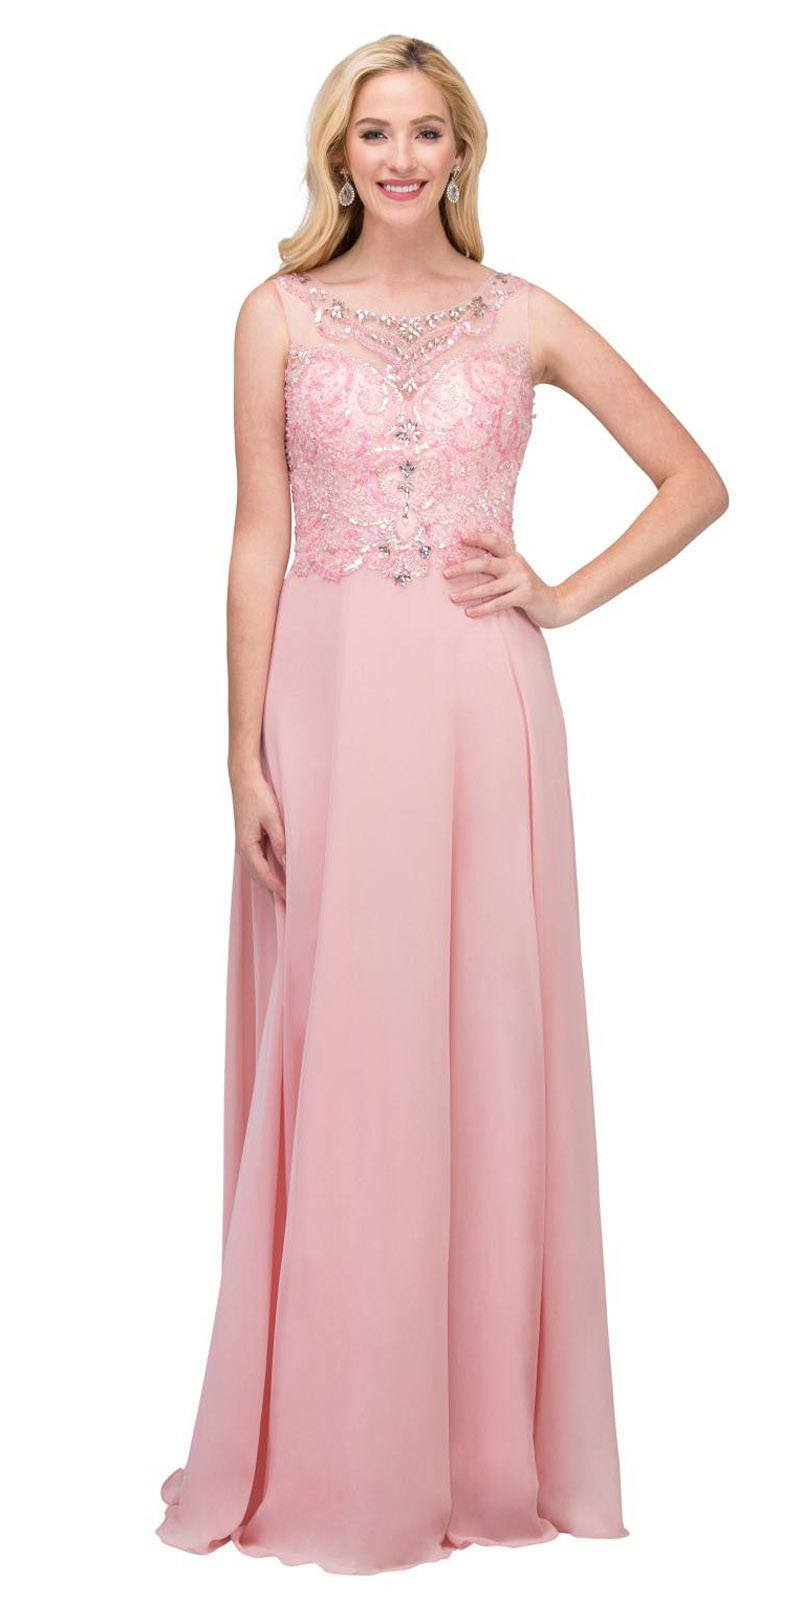 a6a45f631fd 2019 Long and Short Prom Dresses, Prom Shoes - PromGirl